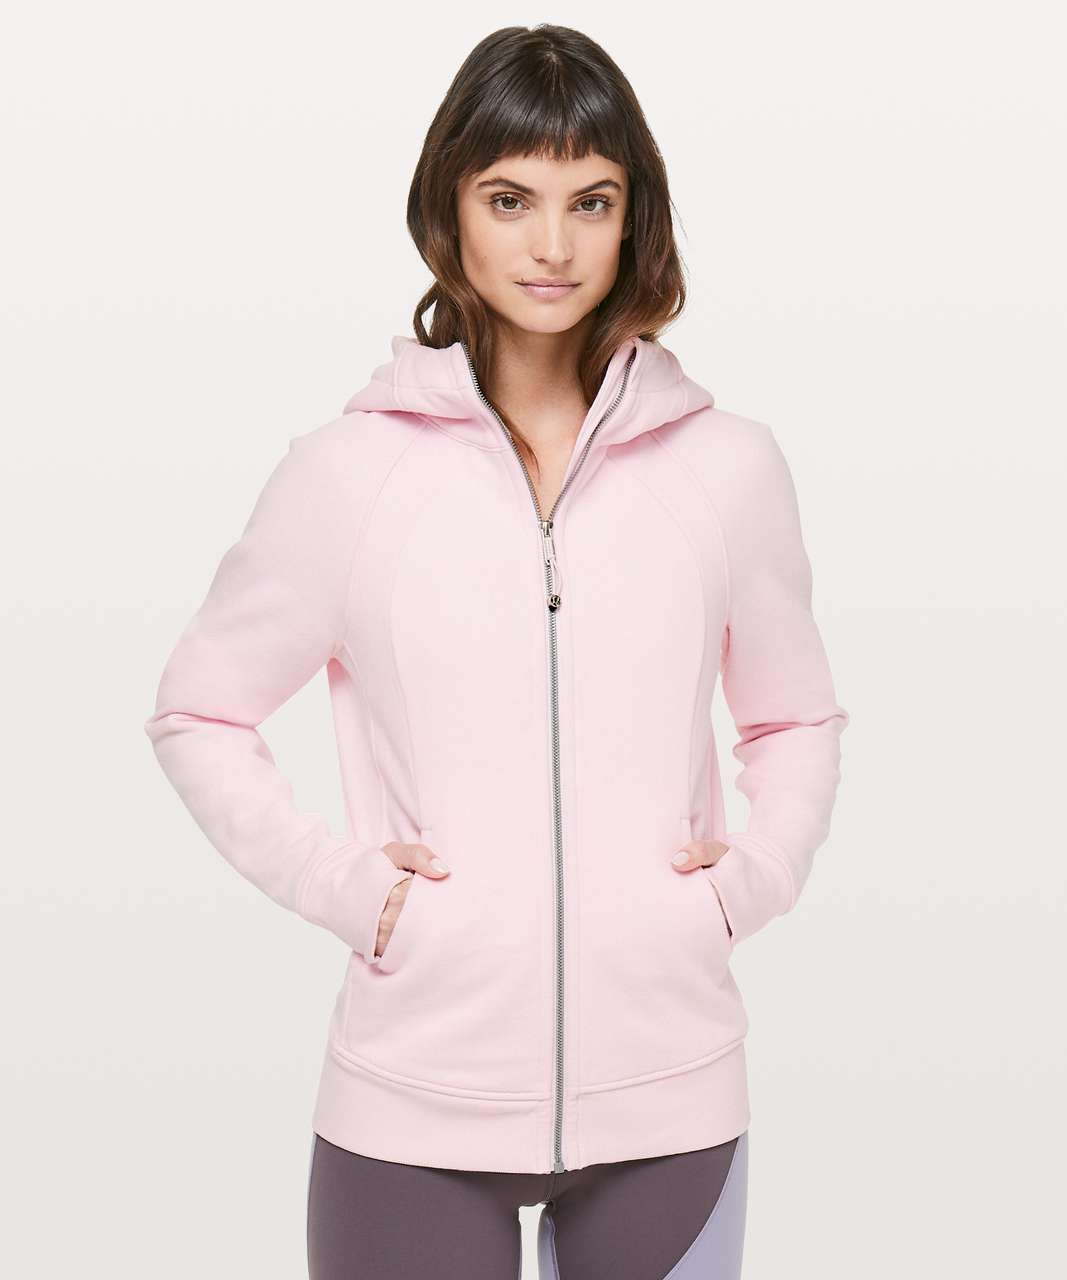 Lululemon Scuba Hoodie *Light Cotton Fleece - Blissful Pink